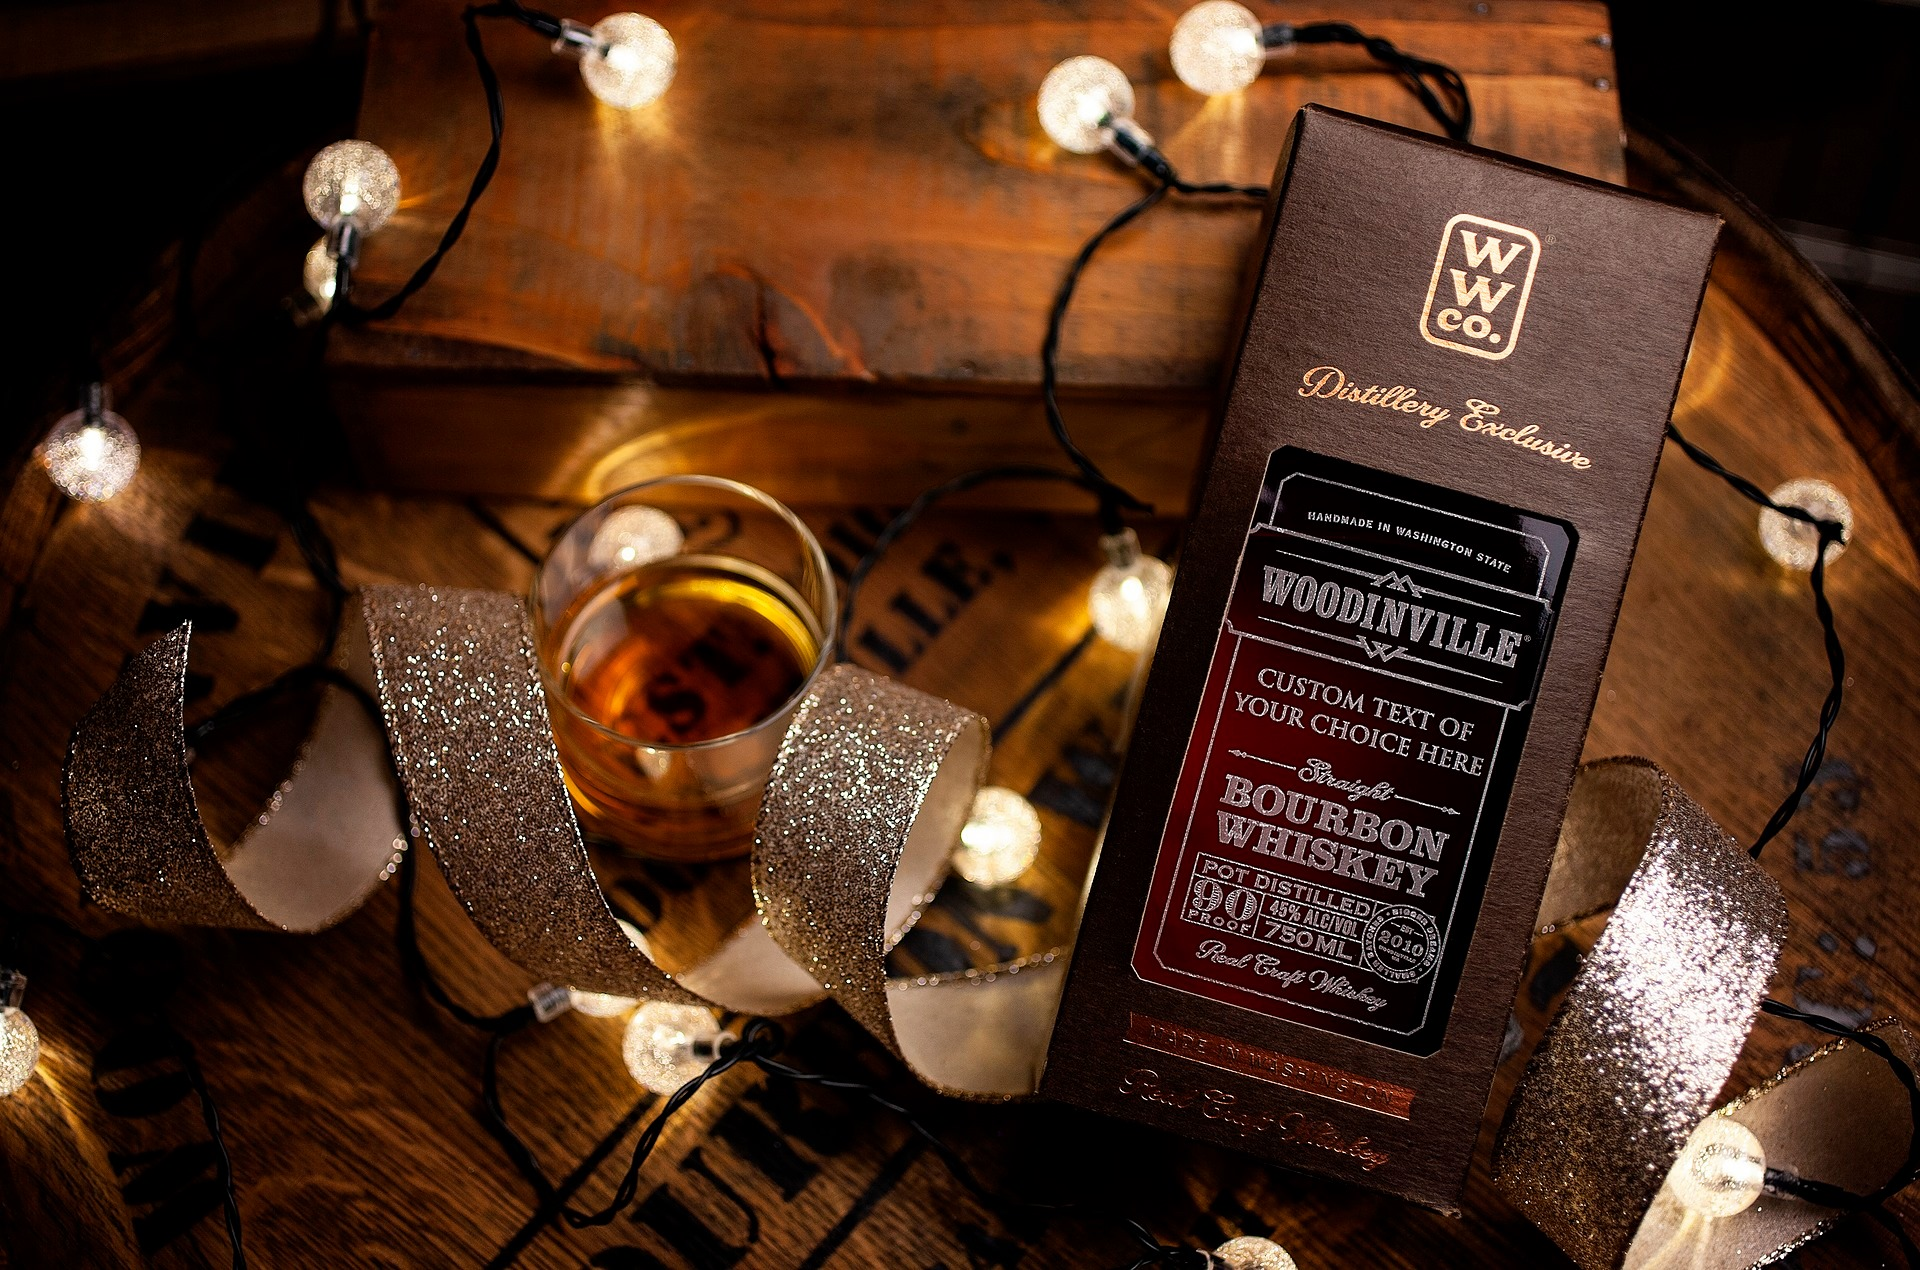 Woodinville Whiskey offers a variety of gift-worthy options.  Opt for the flagship Bourbon, named Best Straight Bourbon of 2020 and Best Bourbon Outside Kentucky, it makes a gorgeous statement when gifted in a custom etched bottle. ($54.95 for the bottle, plus $20 for the etching, for a total of $74.95.) (Image: Woodinville Whiskey)